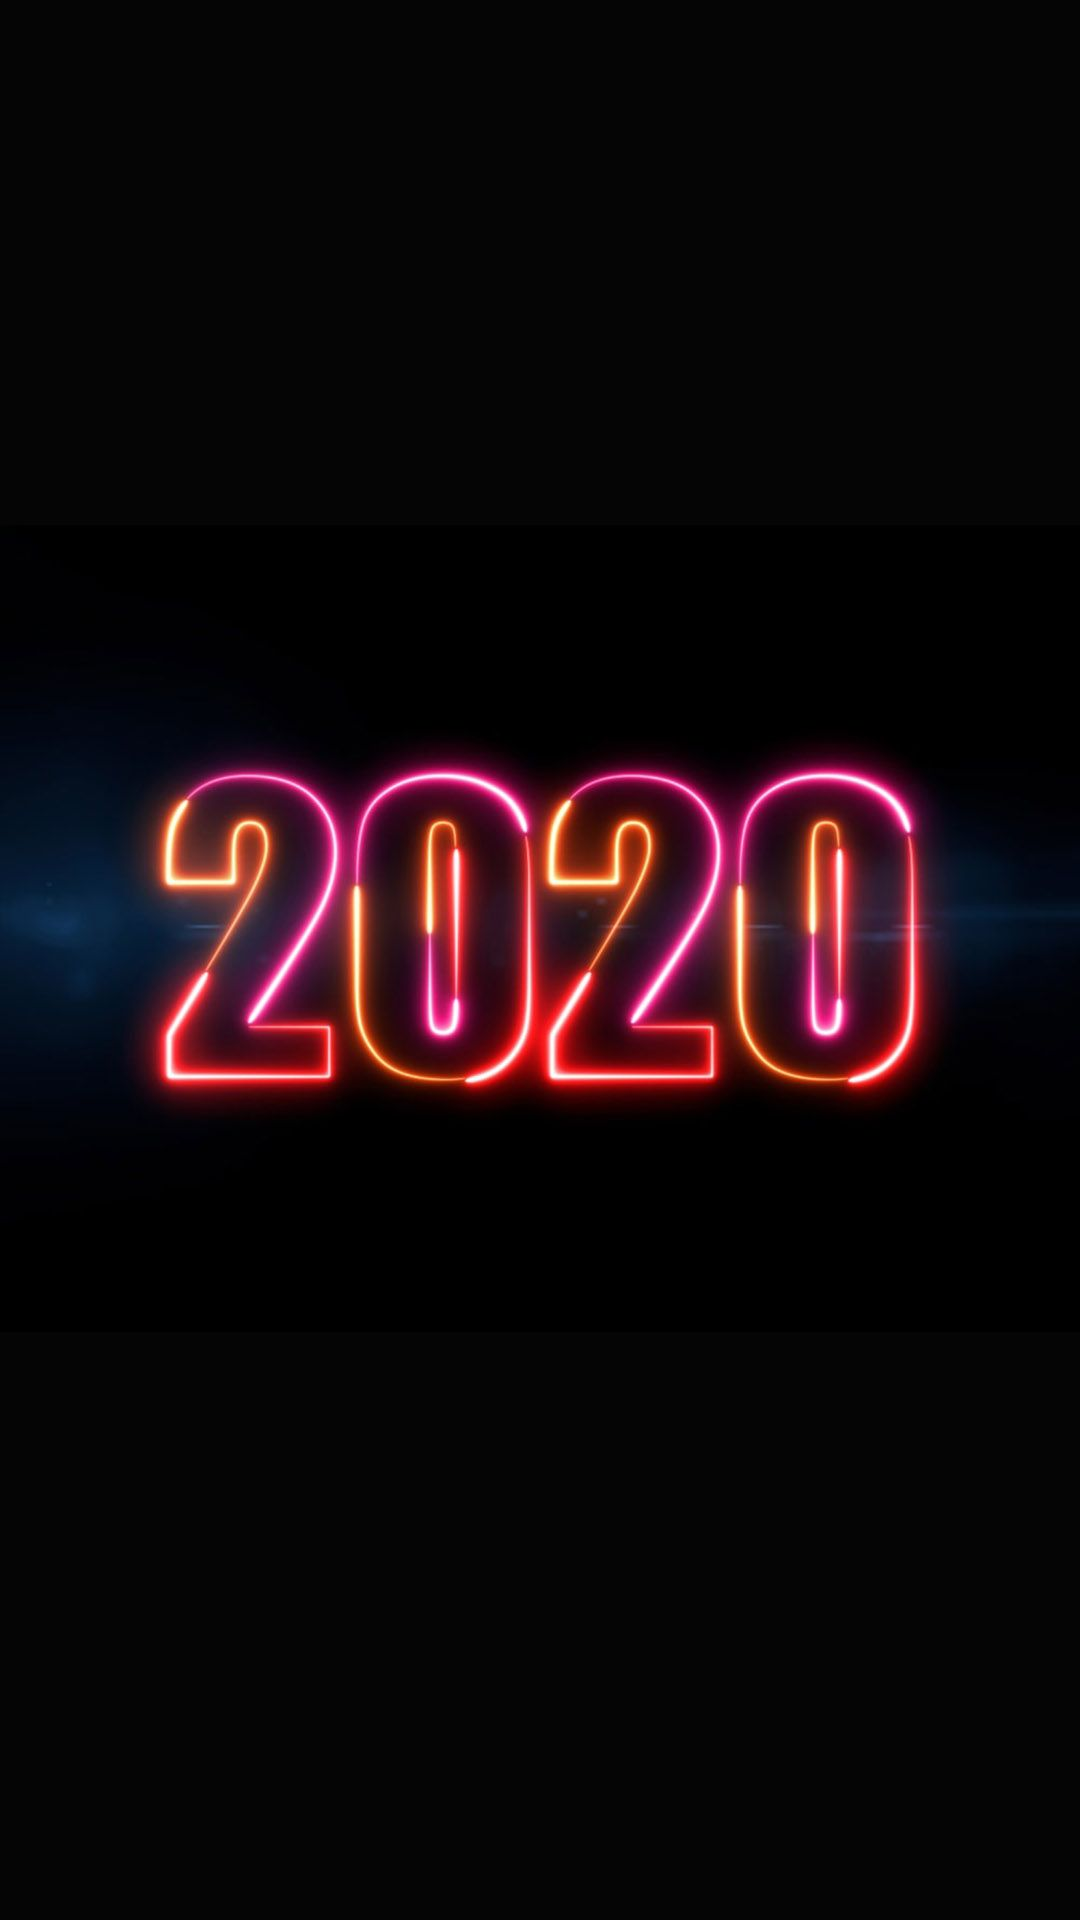 2020 New Year Iphone Wallpaper 1 In 2020 Cool Wallpapers For